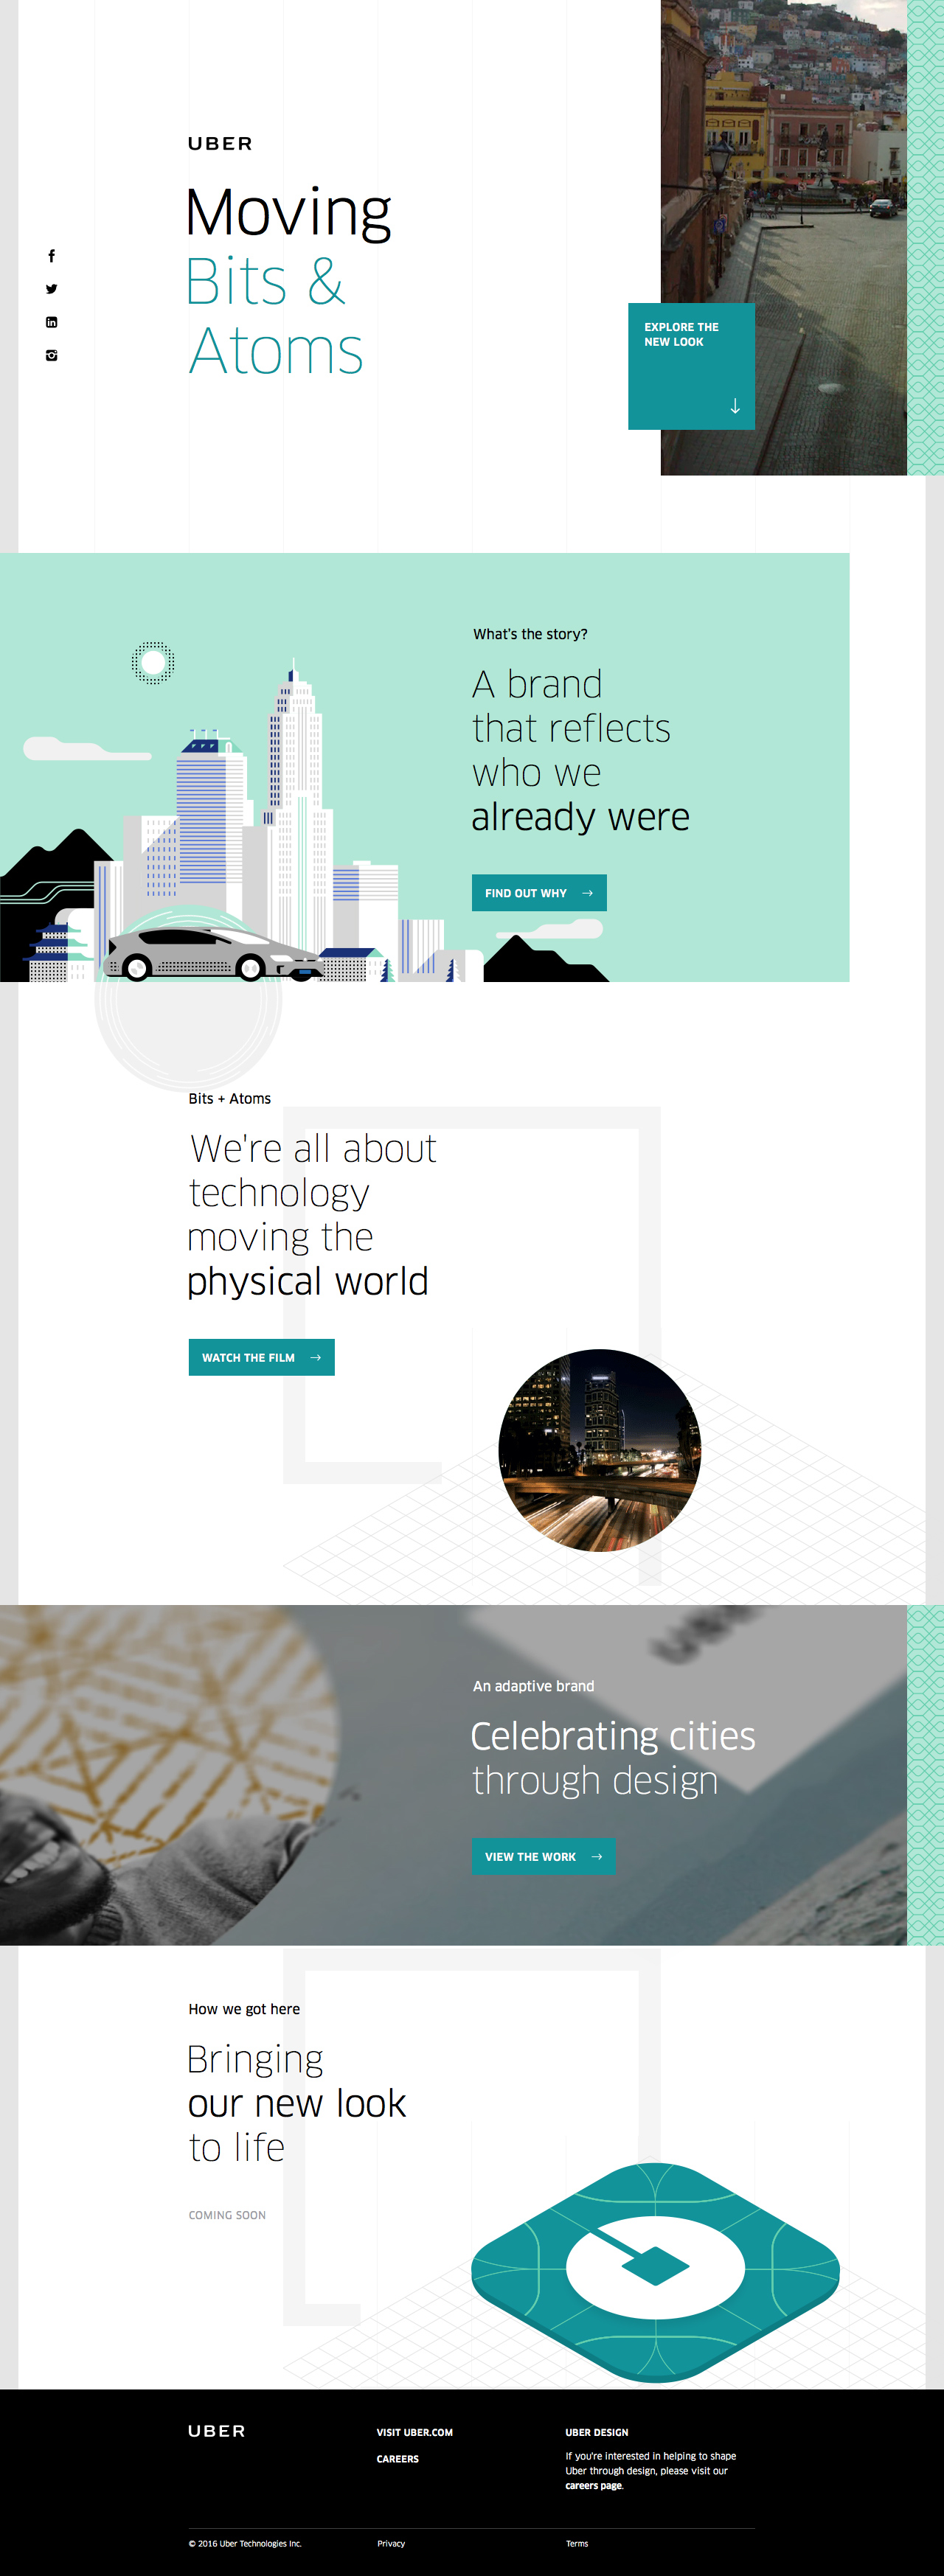 Uber Brand Experience Website Screenshot